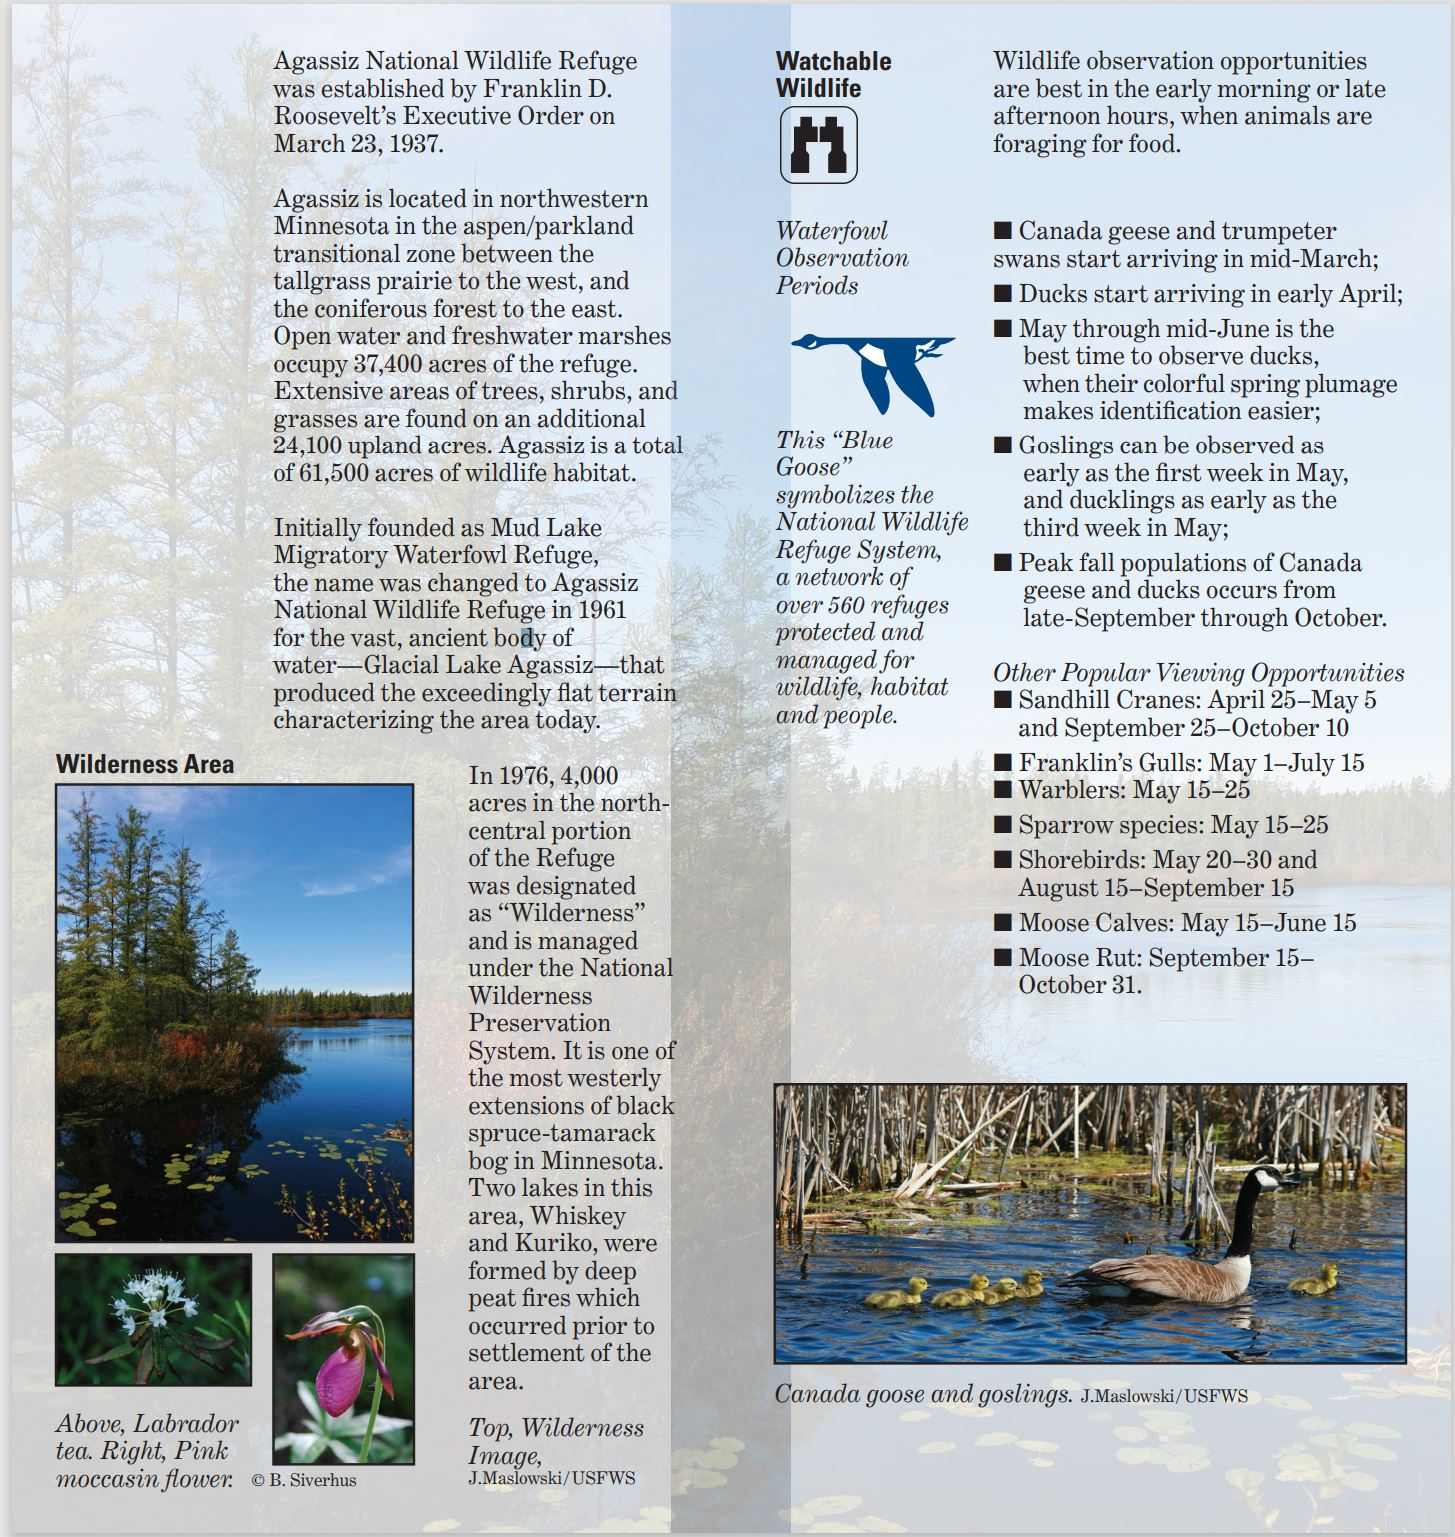 IMAGES and TEXT: Wilderness Area section image